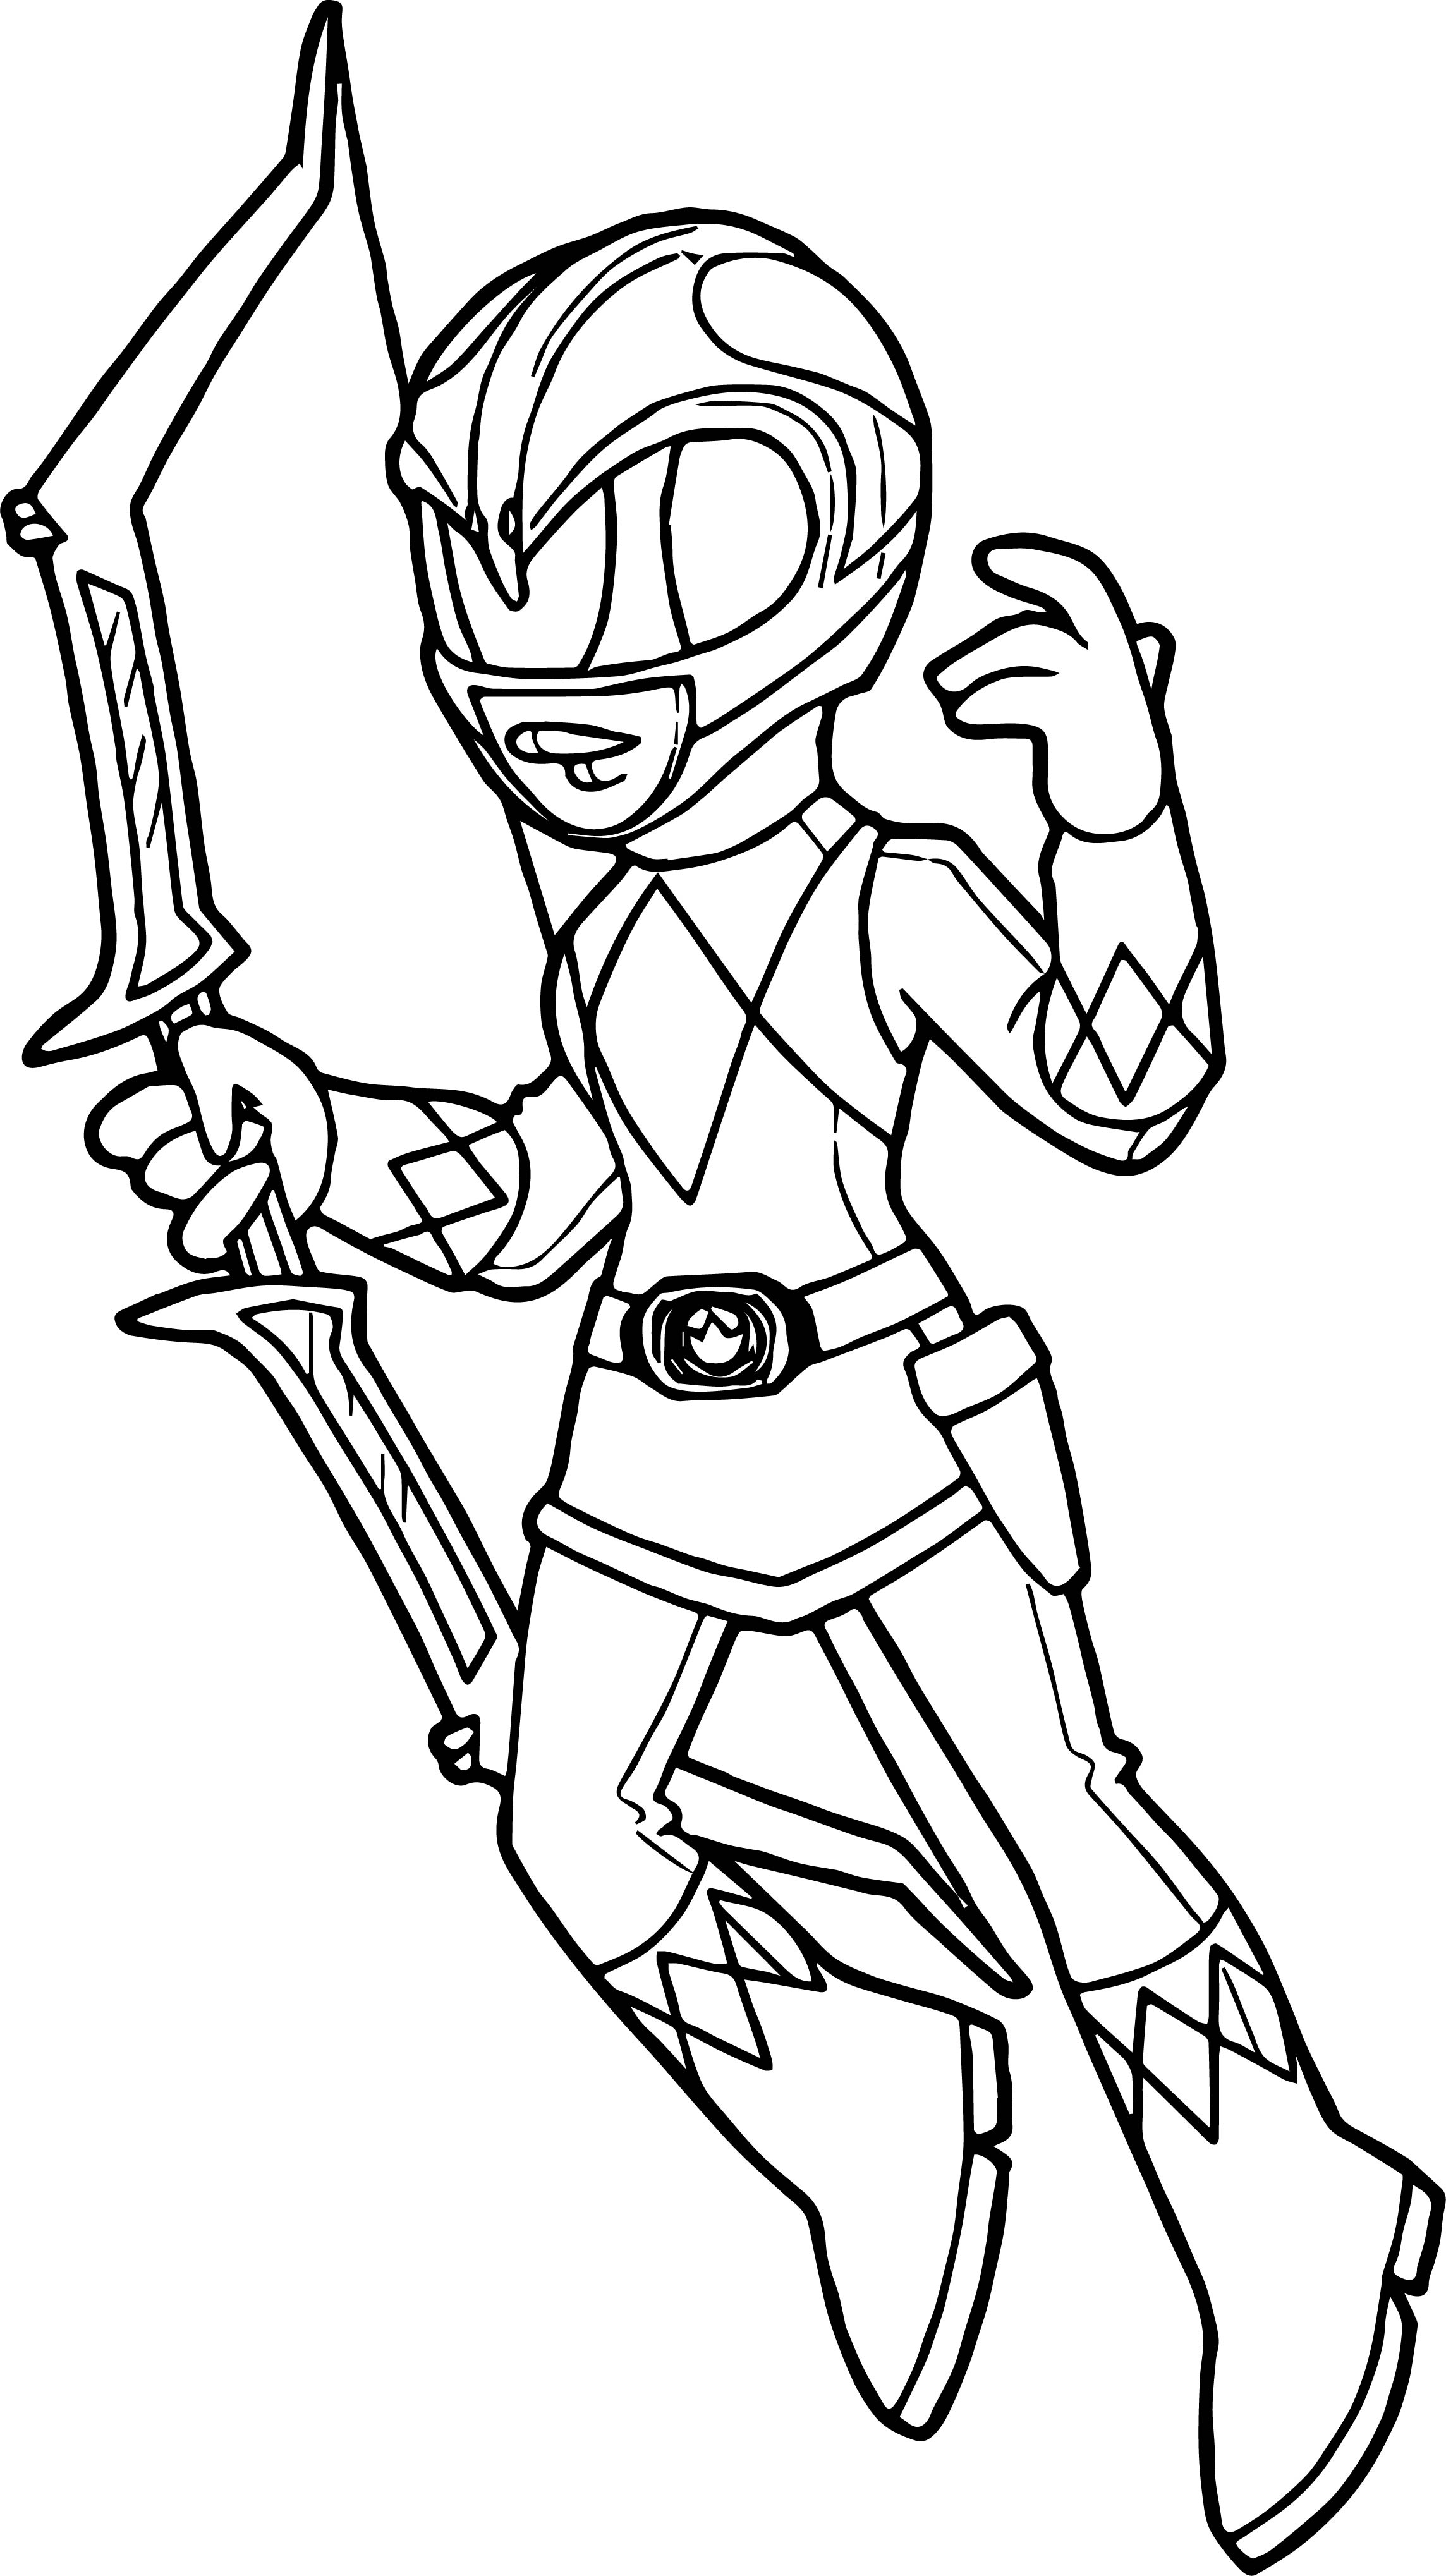 2288x4076 Power Rangers Pink Ranger Coloring Page Wecoloringpage At Pages